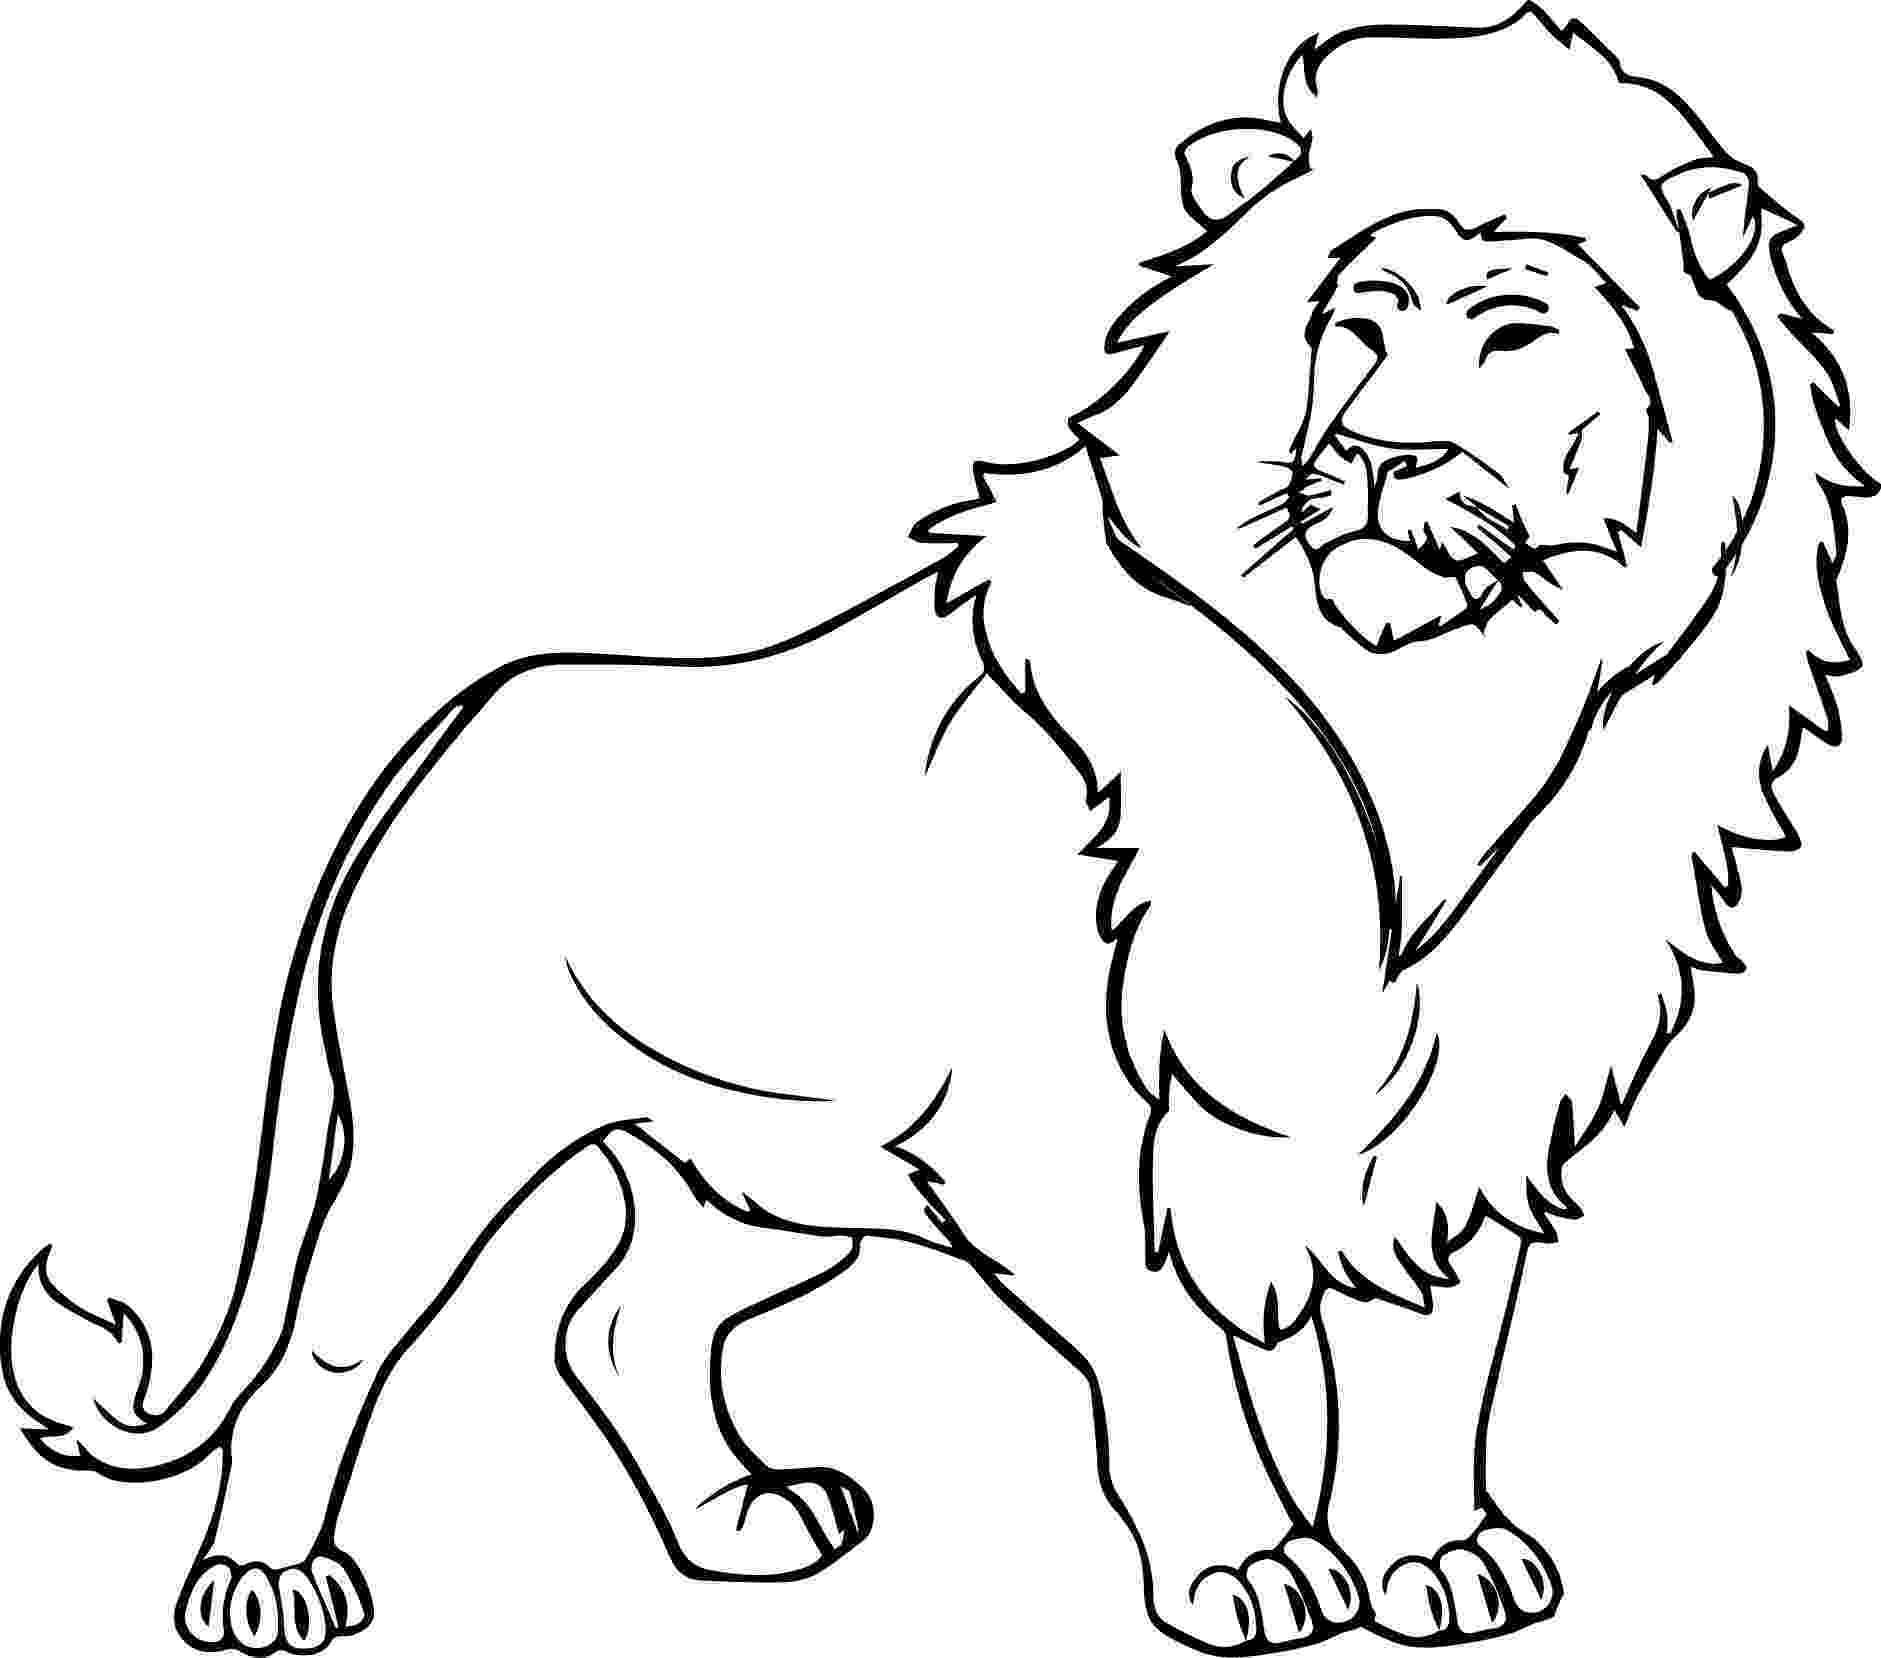 pictures of lions to color lion coloring free animal coloring pages sheets lion of pictures color to lions